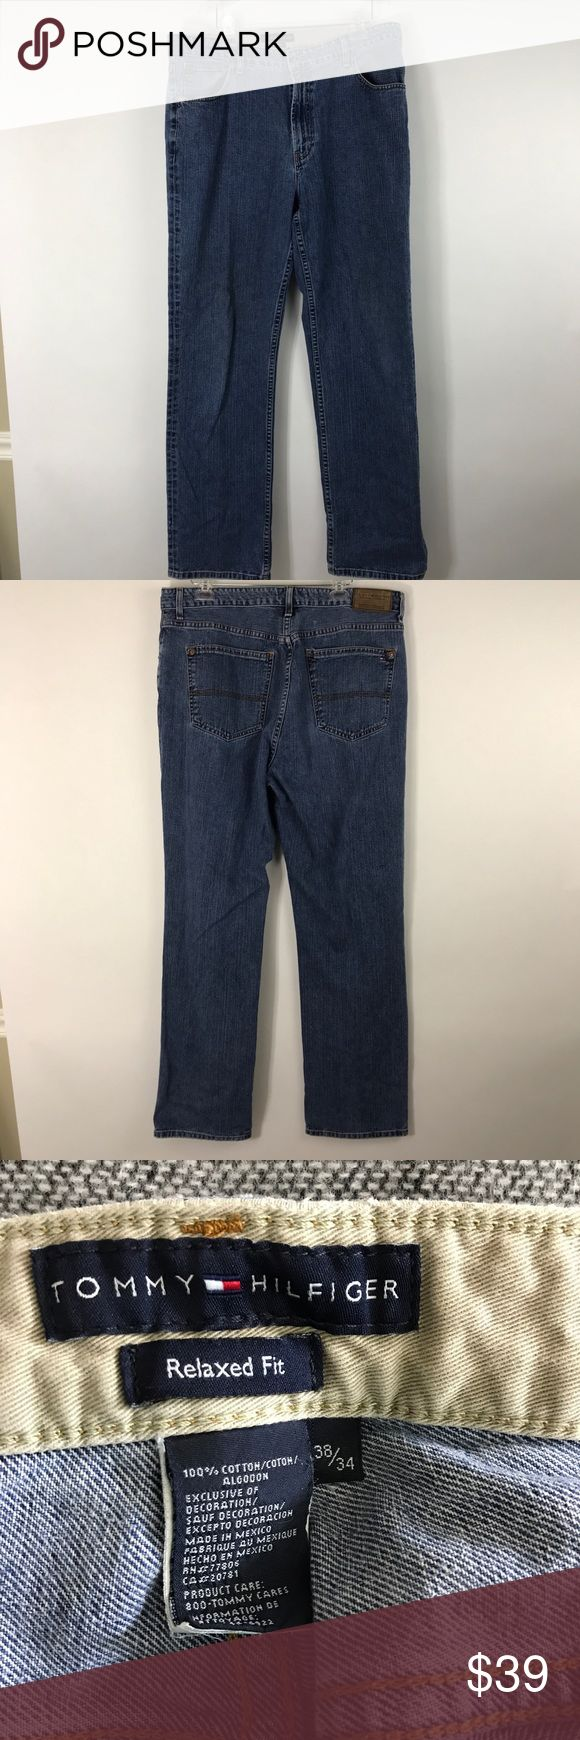 """Tommy Hilfiger Men's Jeans Relaxed Fit 38/34 Medium Wash  100% Cotton Measurements are approximate  Waist-lying flat-18.5"""" Inseam-33"""" Rise-12"""" R98 Tommy Hilfiger Jeans Relaxed"""